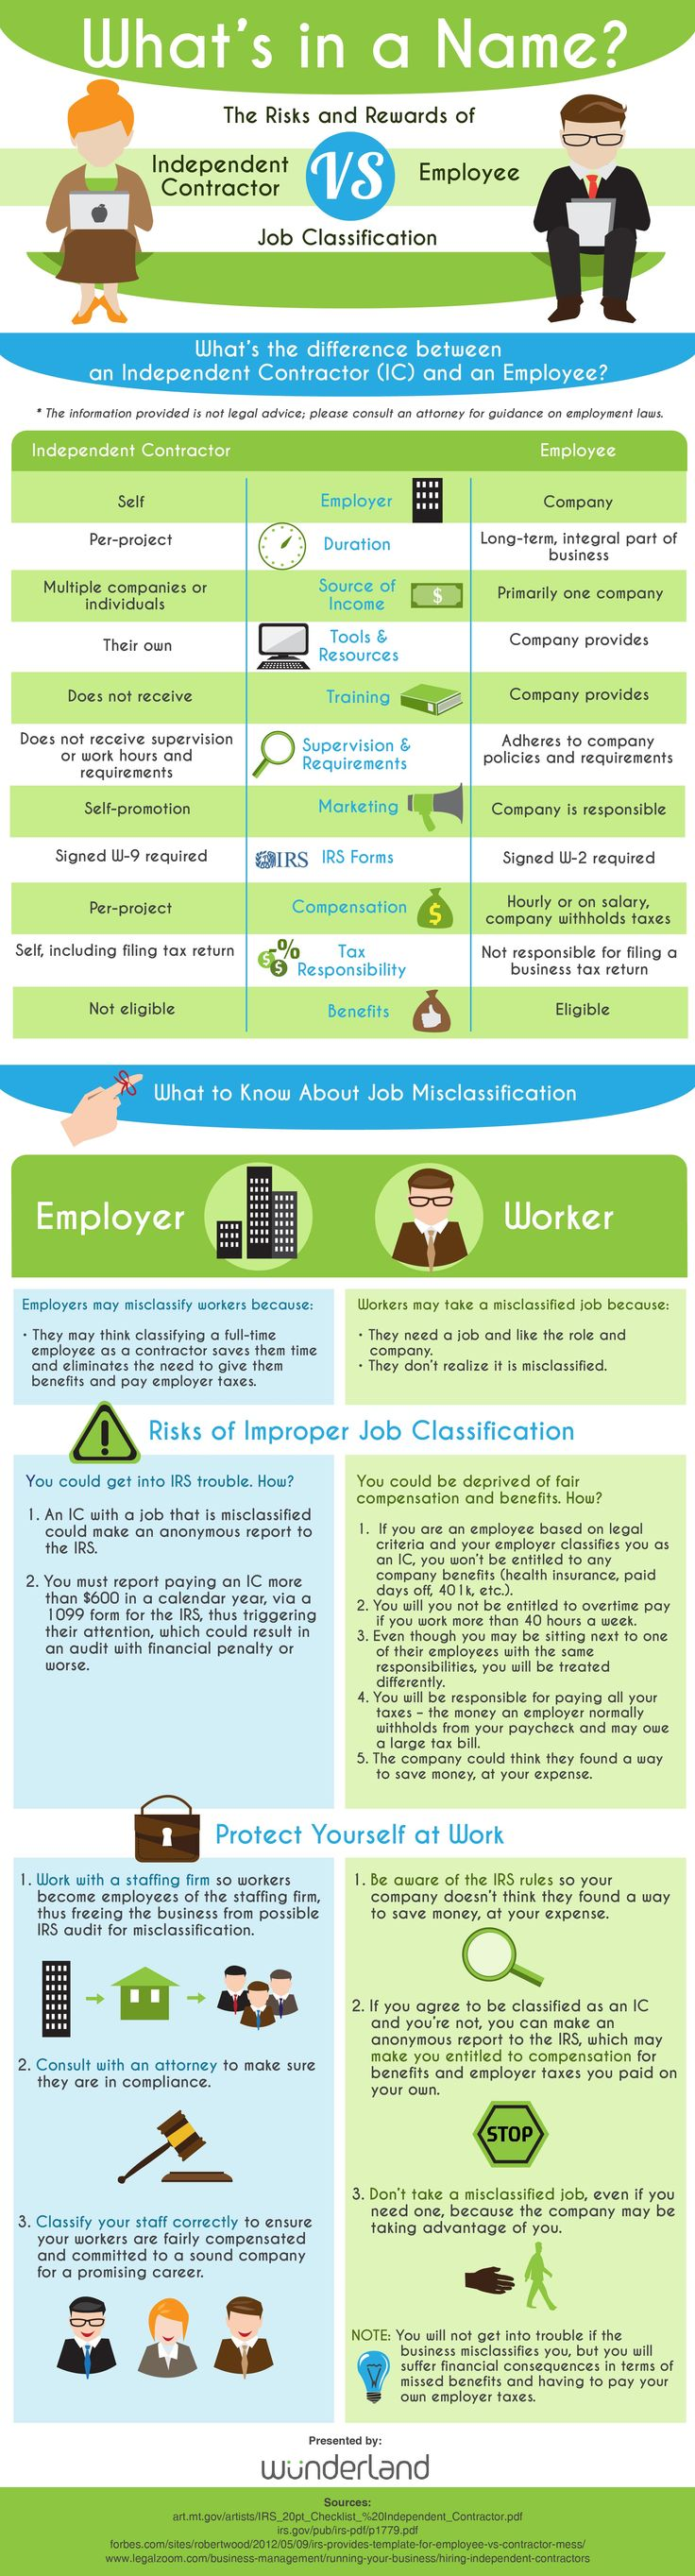 Great Why Employee Vs. Independent Contractor Classification Matters #infographic